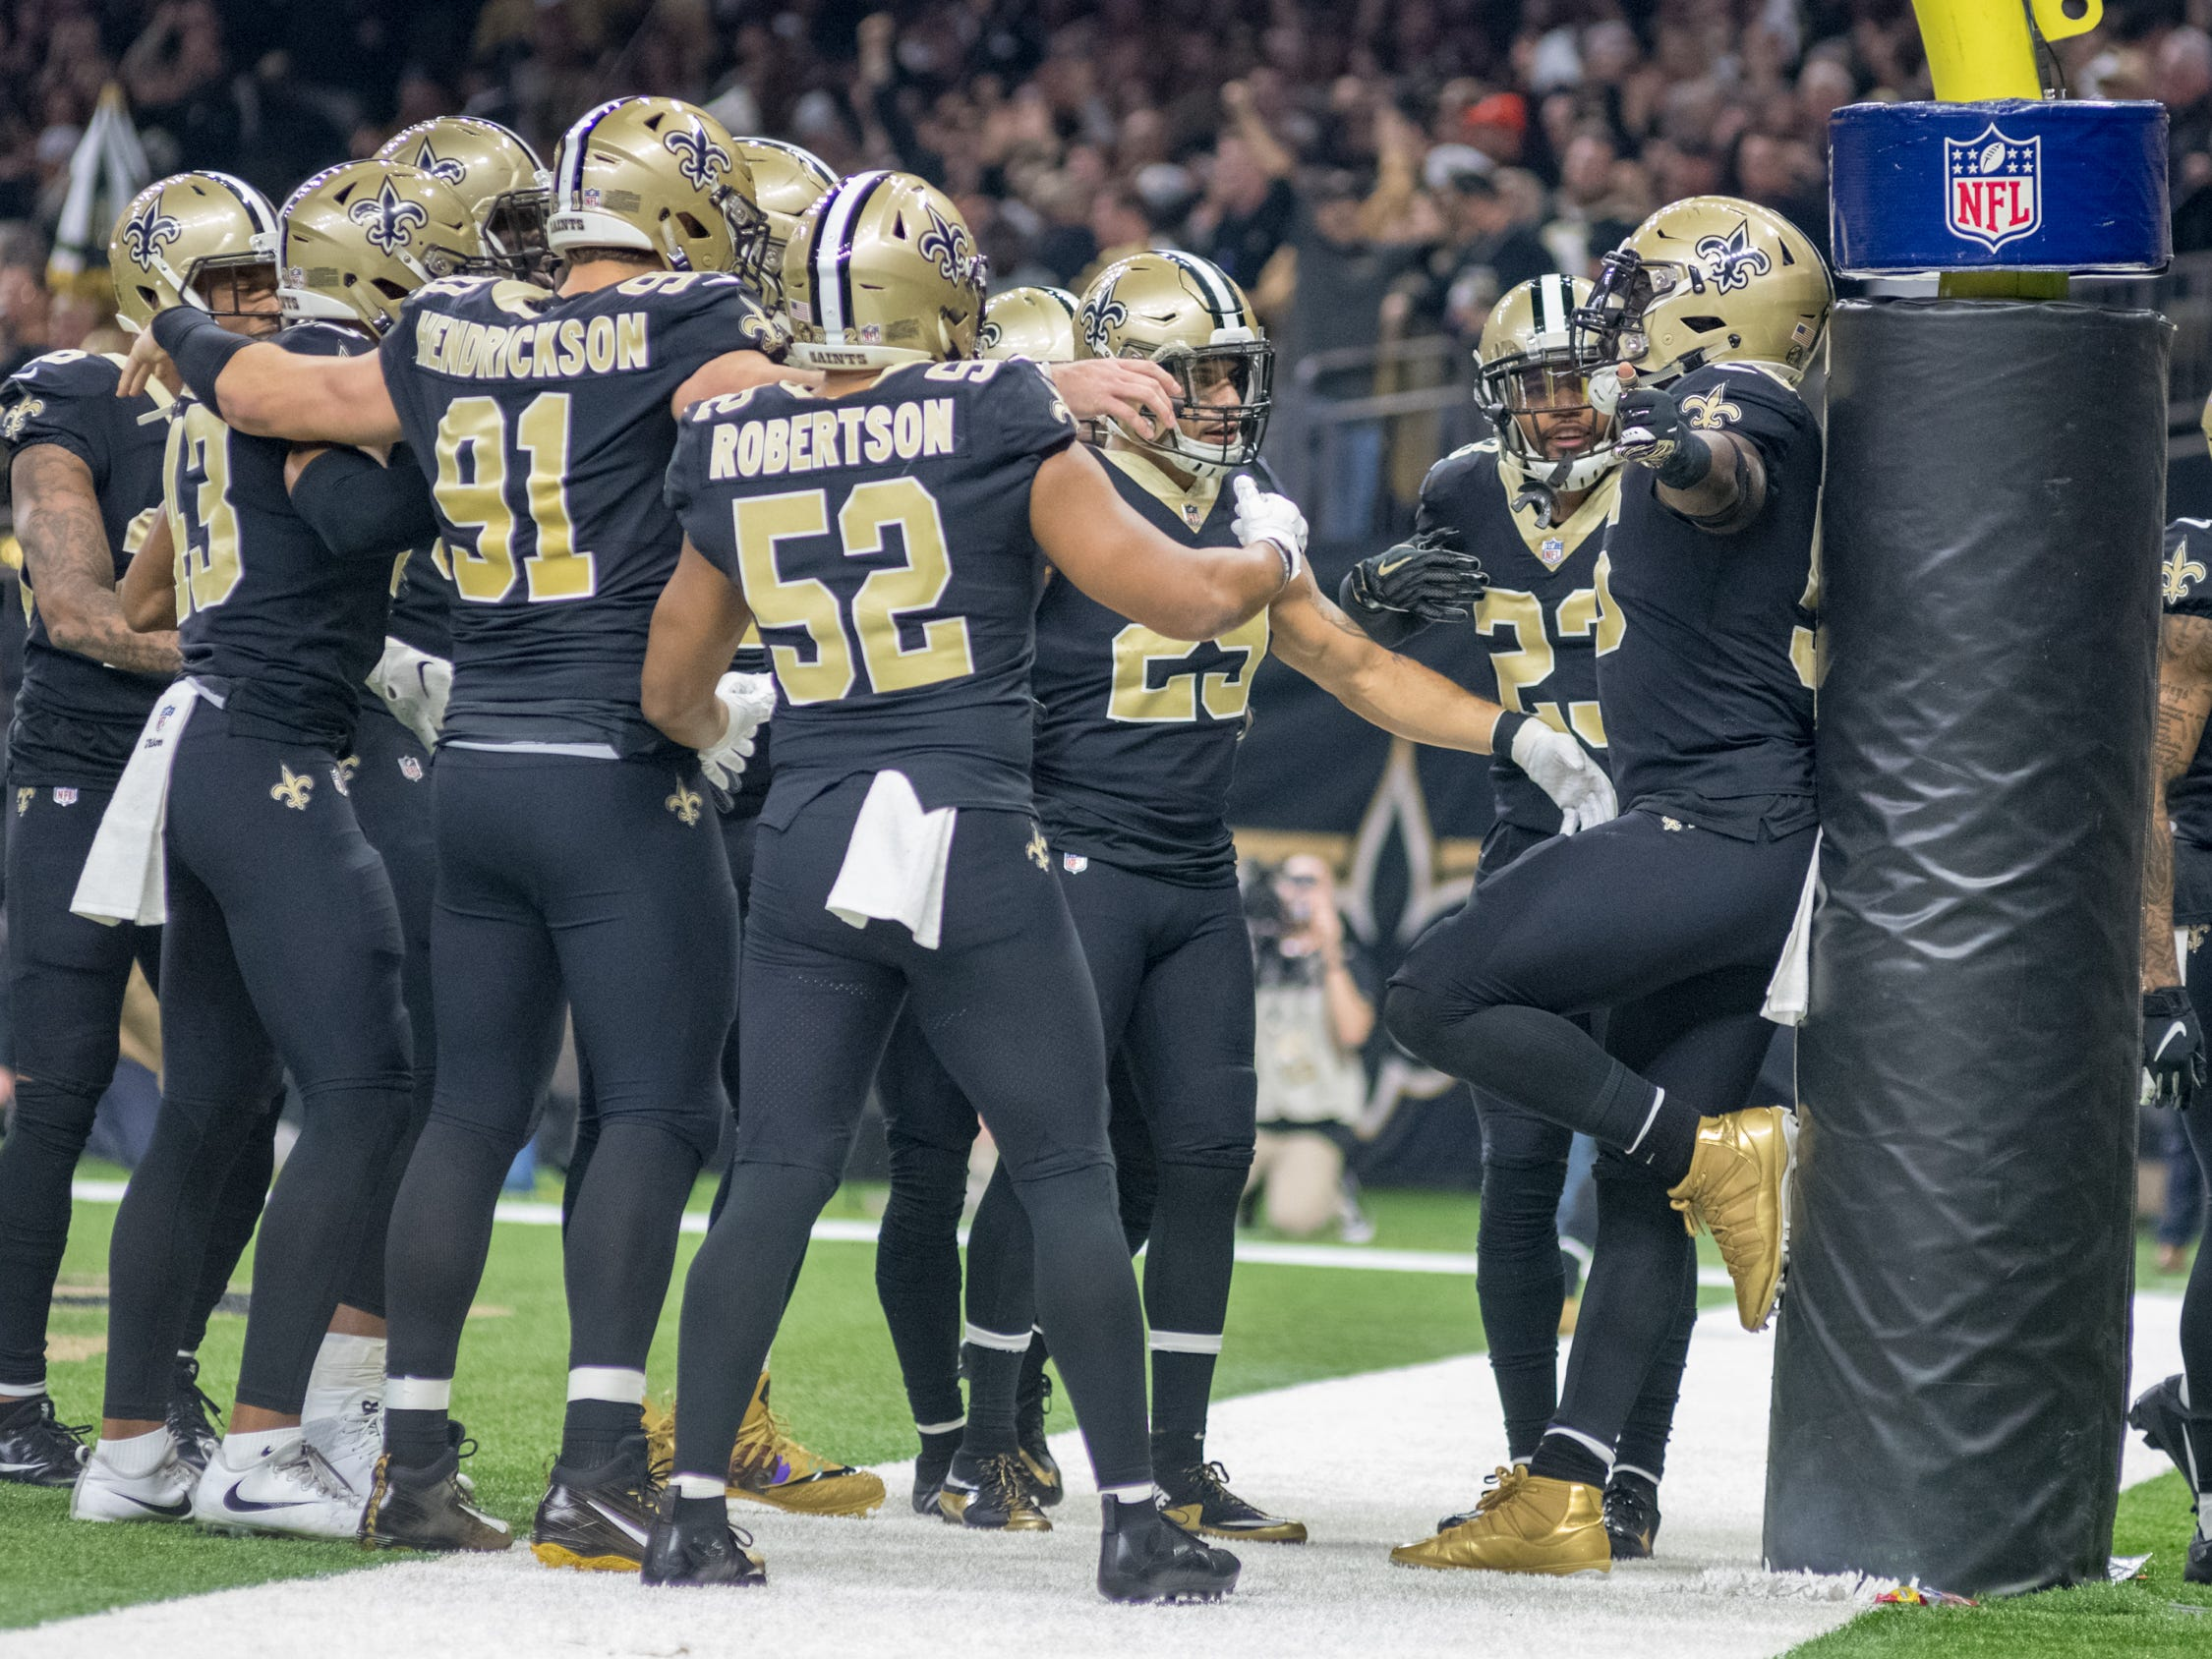 The Saints defense celebrates in the endzone during the NFC Championship playoff football game between the New Orleans Saints and the Los Angeles Rams at the Mercedes-Benz Superdome in New Orleans. Sunday, Jan. 20, 2019.